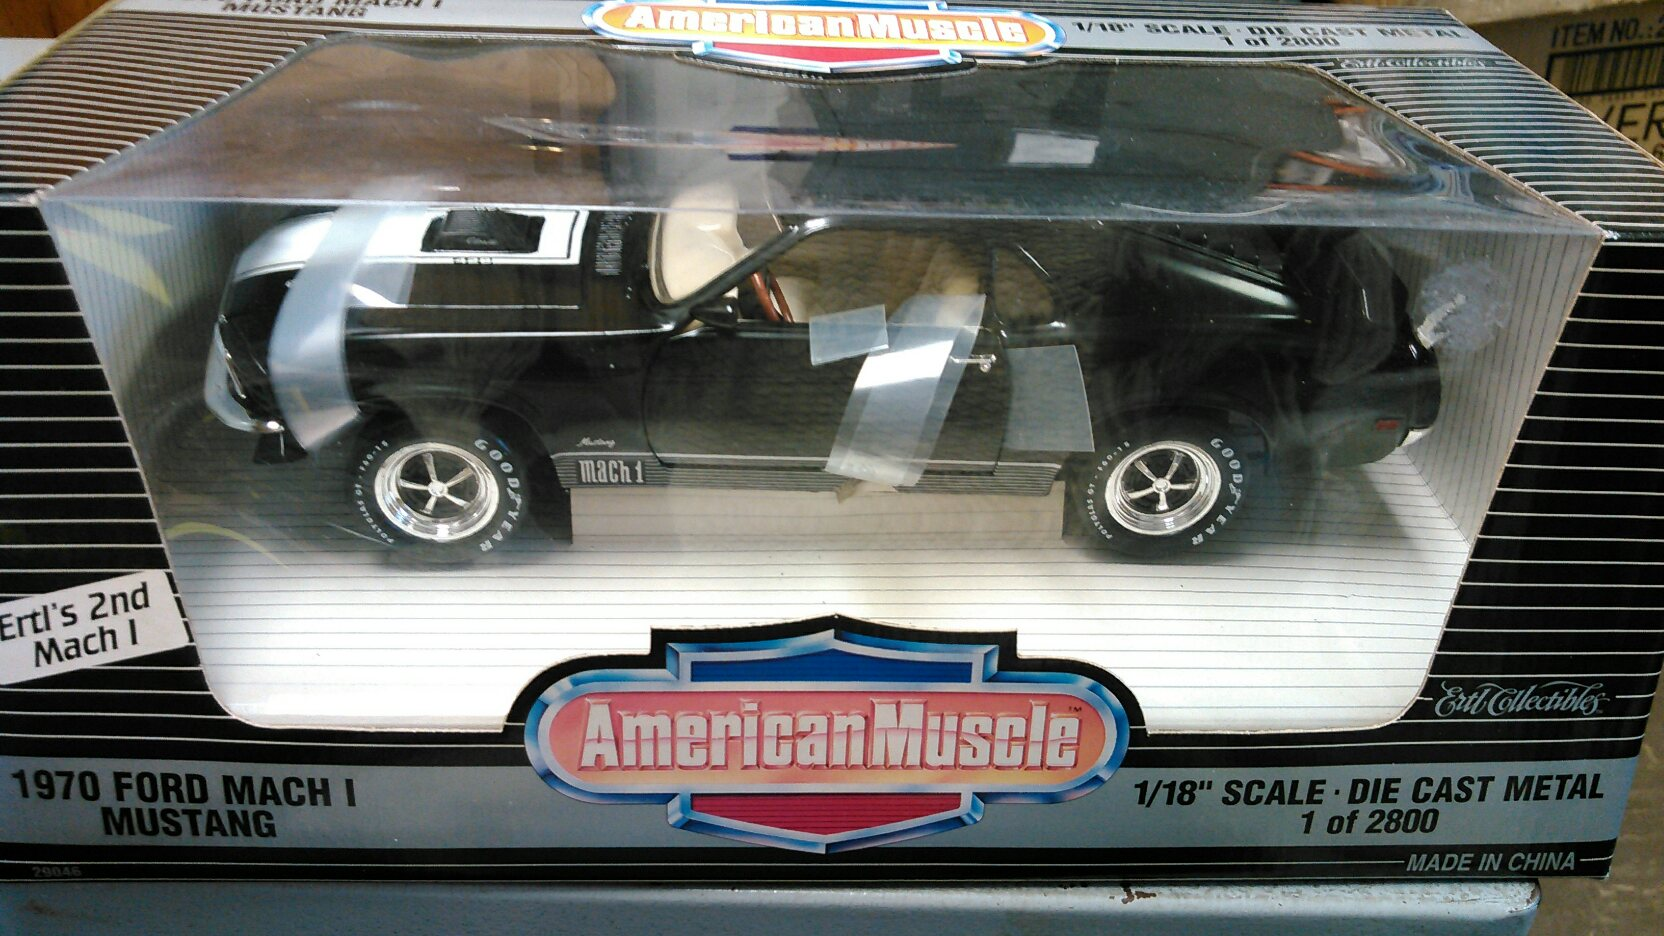 1970 Ford Mach 1 Mustang Larrys Diecast Cars Police Car